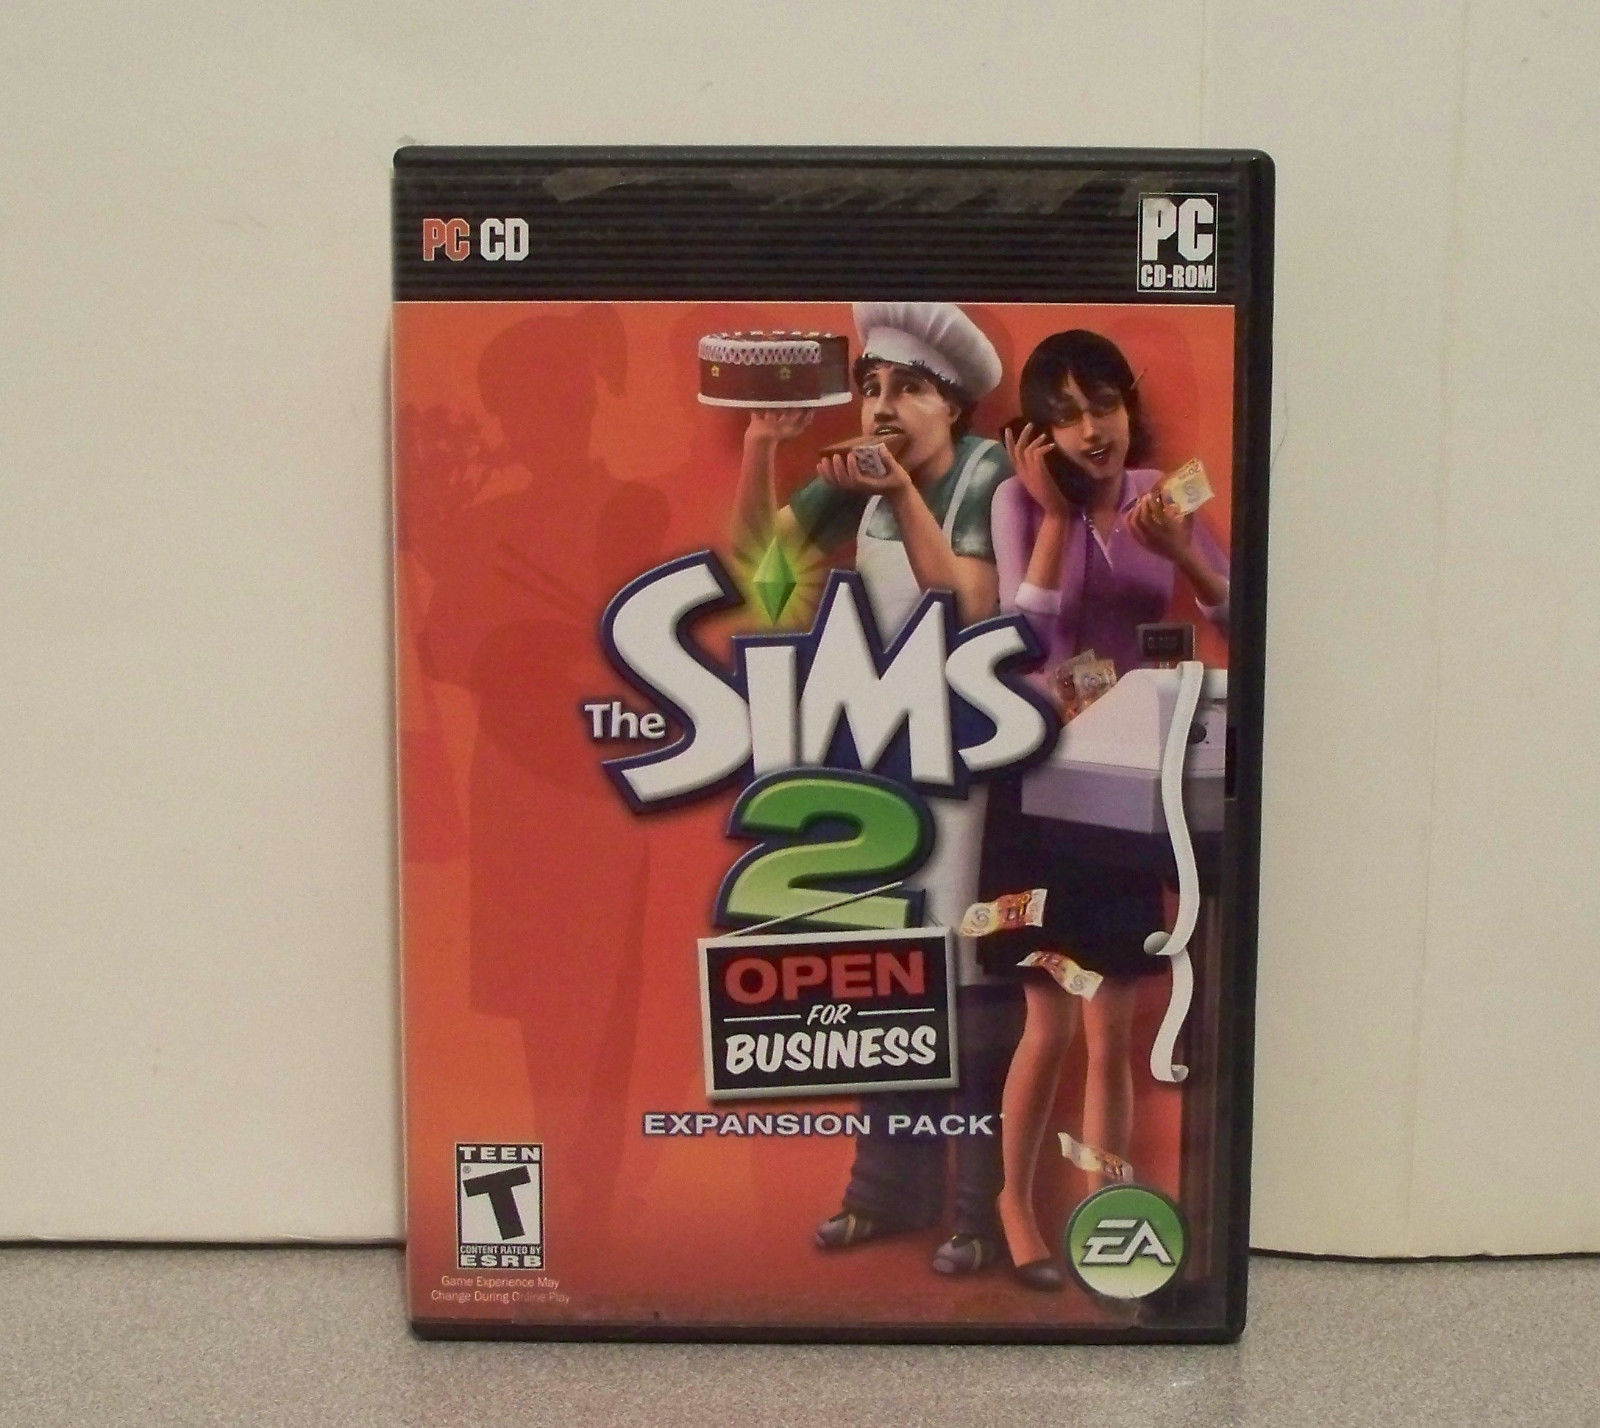 Sims 2: Open for Business (PC, 2006) Expansion Pack With Manual and Install Code